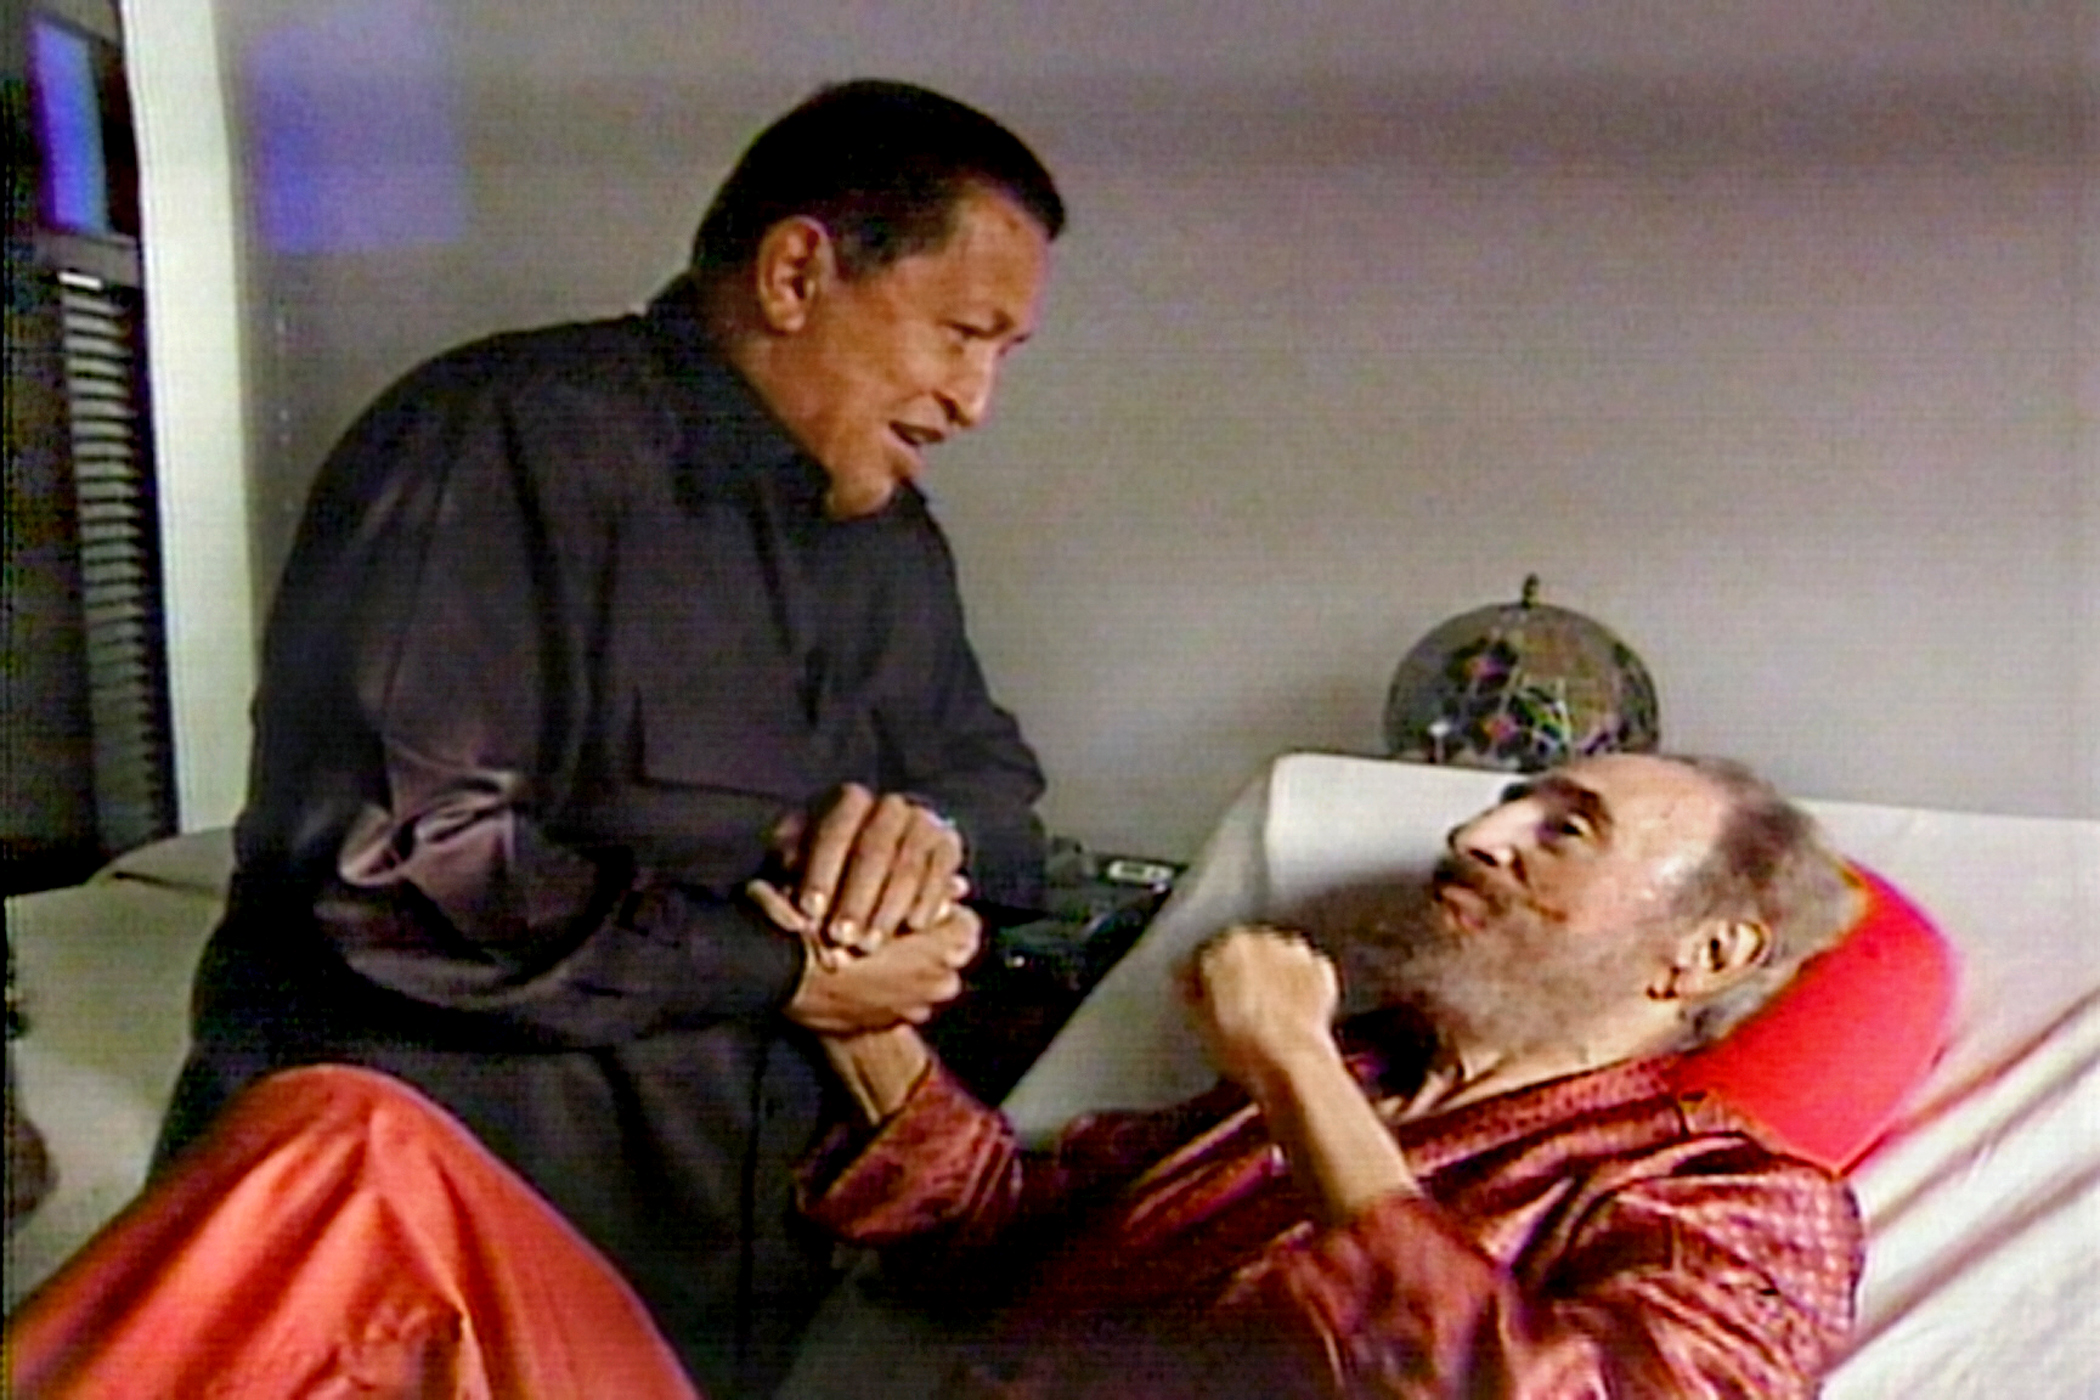 A screen grab from state-owned Cuban television shows late Venezuelan President Hugo Chavez holding the hand of Fidel Castro, his Cuban counterpart, in his sickbed in Havana on Sept. 1, 2006. Chavez visited Castro, who is recovering from intestinal surgery, on a stopover in Havana on his way back from a 10-day trip to China, Malaysia, Syria and Angola.